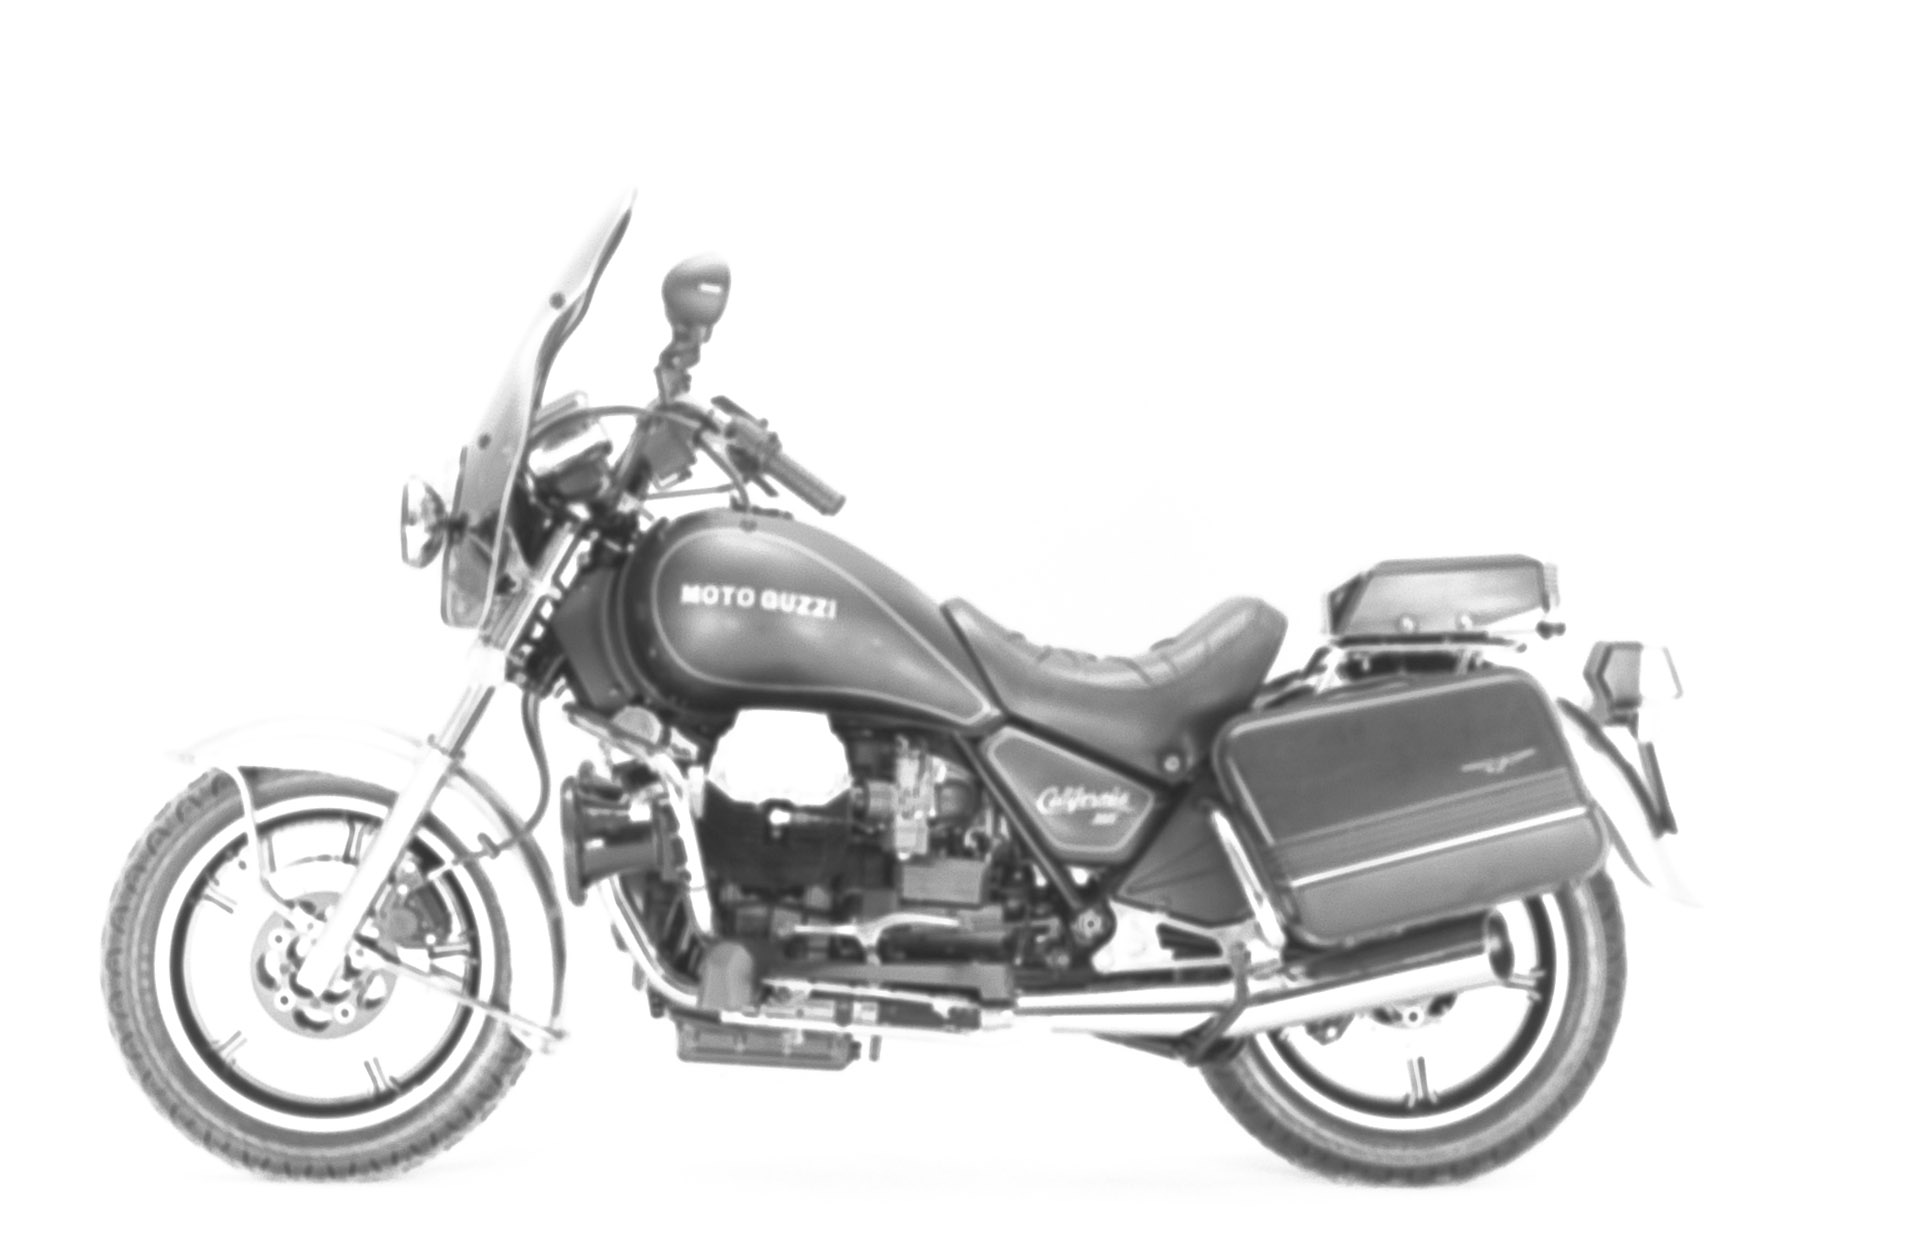 Moto Guzzi California III 1993 images #108663